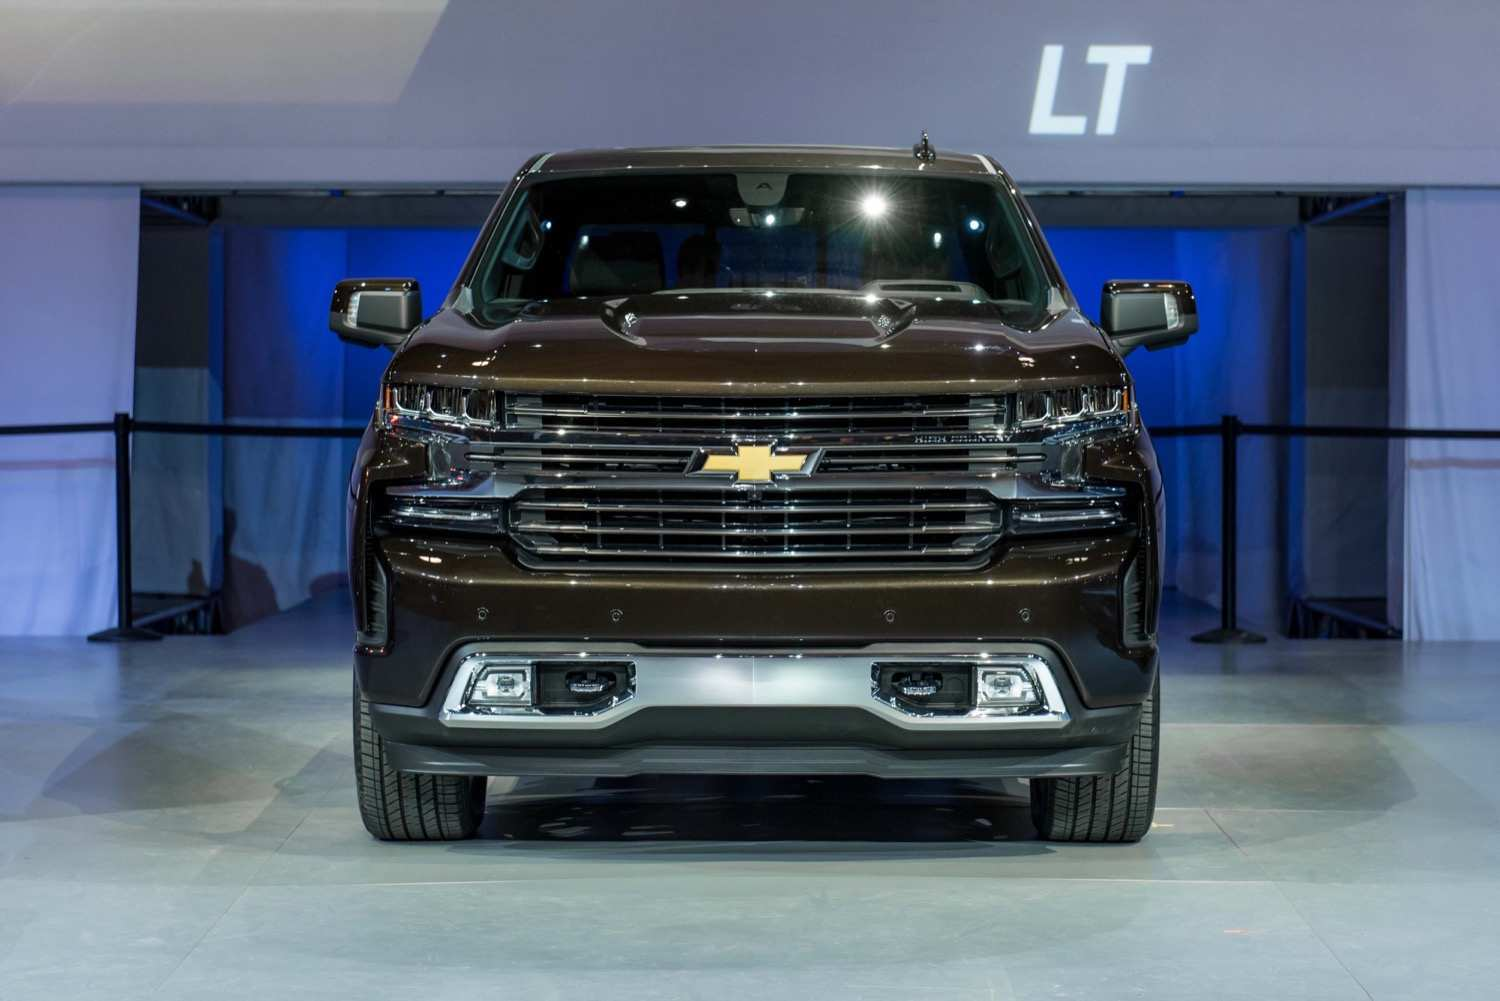 40 New The Chevrolet Pickup 2019 Diesel Engine Speed Test for The Chevrolet Pickup 2019 Diesel Engine